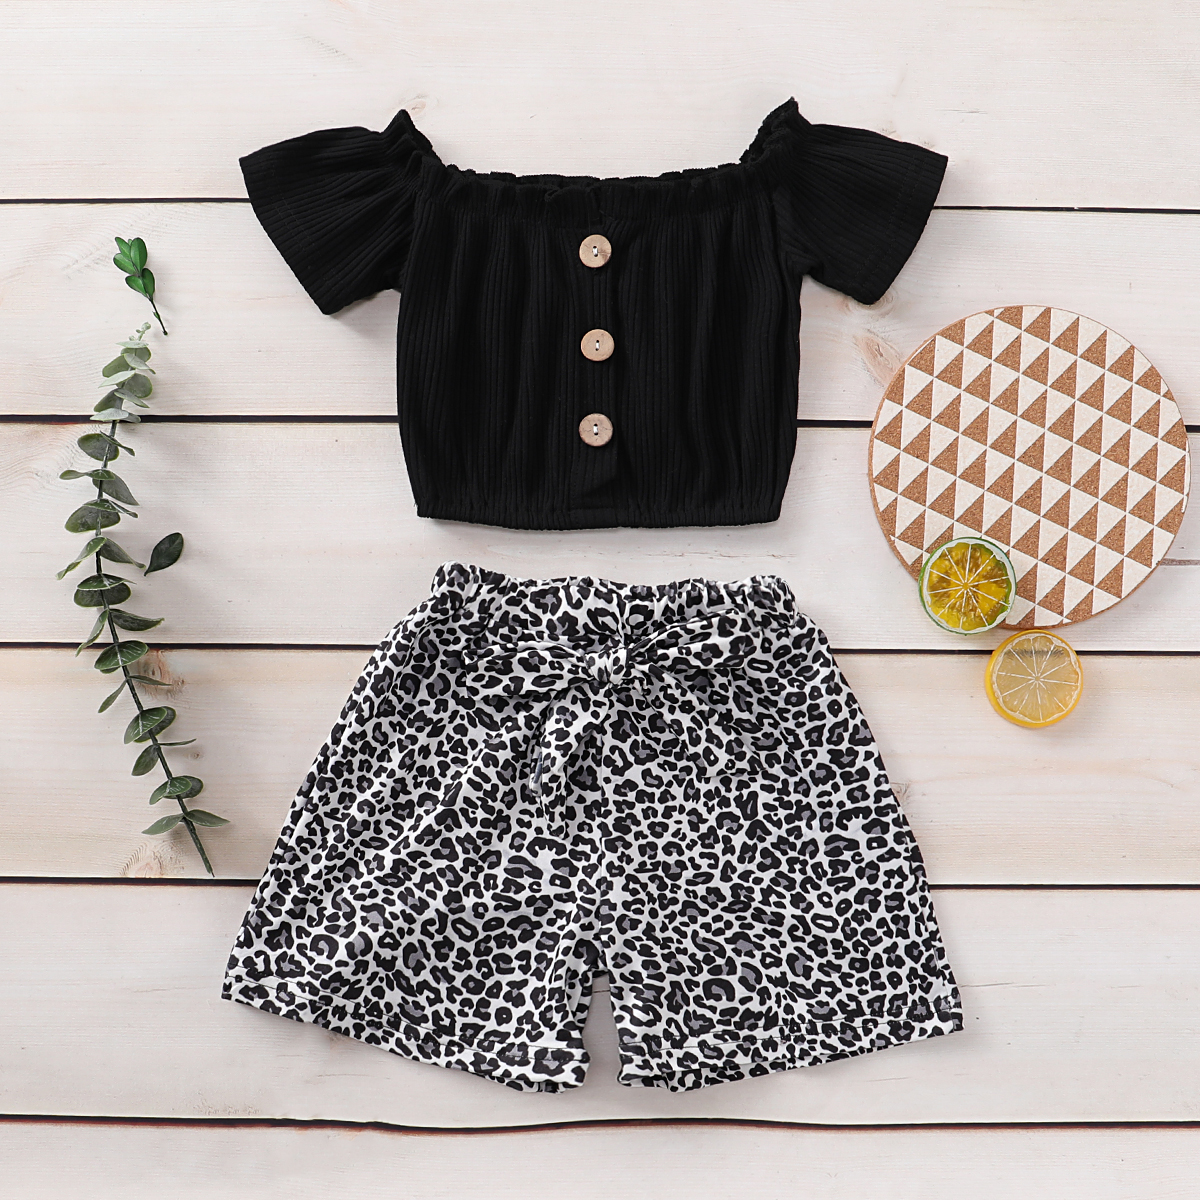 Pudcoco Toddler Baby Girl Clothes Solid Color Off Shoudler Ruffle T-Shirt Tops Leopard Print Short Pants 2Pcs Outfits Clothes